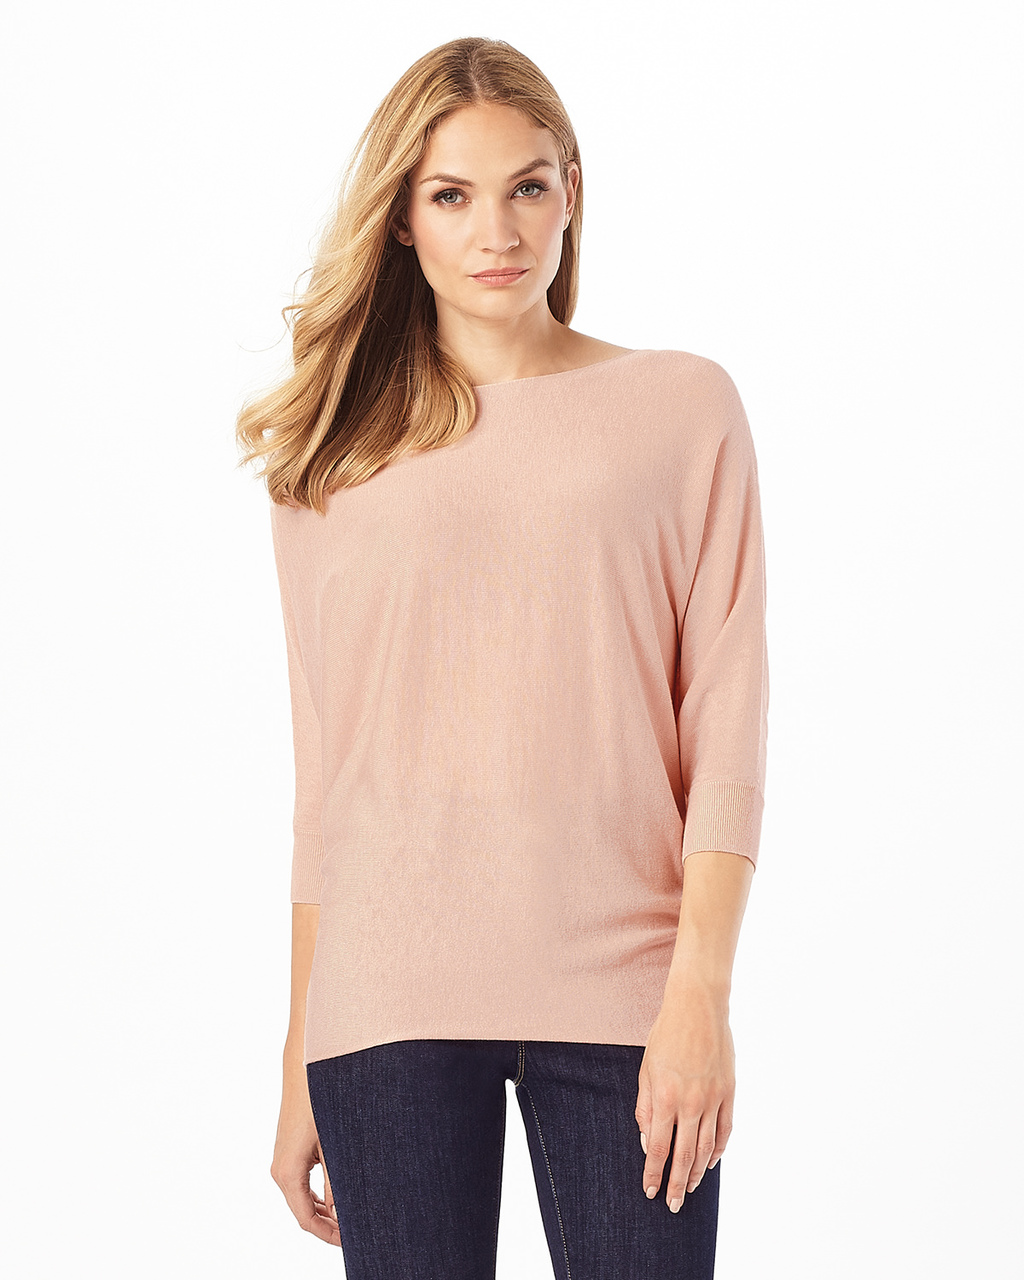 Becca Batwing Jumper - neckline: slash/boat neckline; sleeve style: dolman/batwing; pattern: plain; style: standard; predominant colour: blush; occasions: casual, creative work; length: standard; fibres: cotton - mix; fit: standard fit; sleeve length: 3/4 length; texture group: knits/crochet; pattern type: knitted - fine stitch; wardrobe: basic; season: a/w 2016